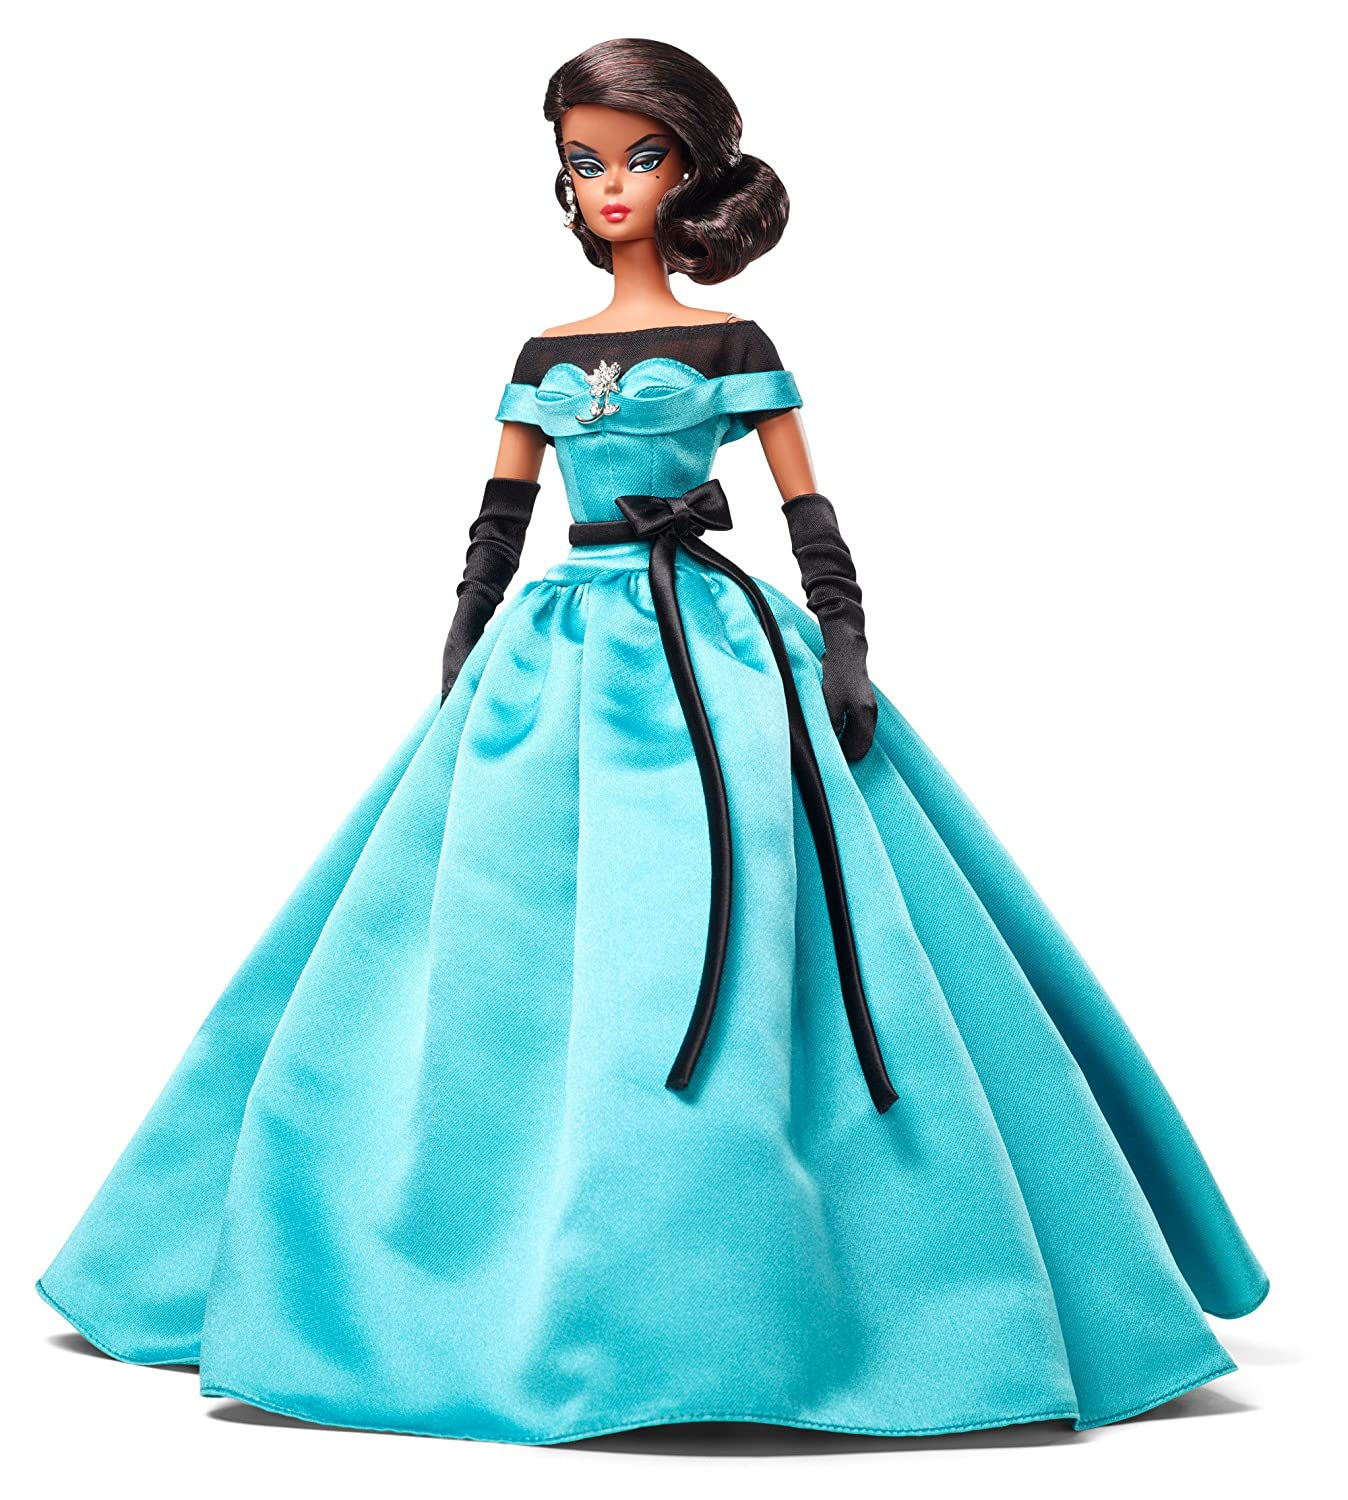 Amazon.com: Barbie Collector Ball Gown Doll: Toys & Games